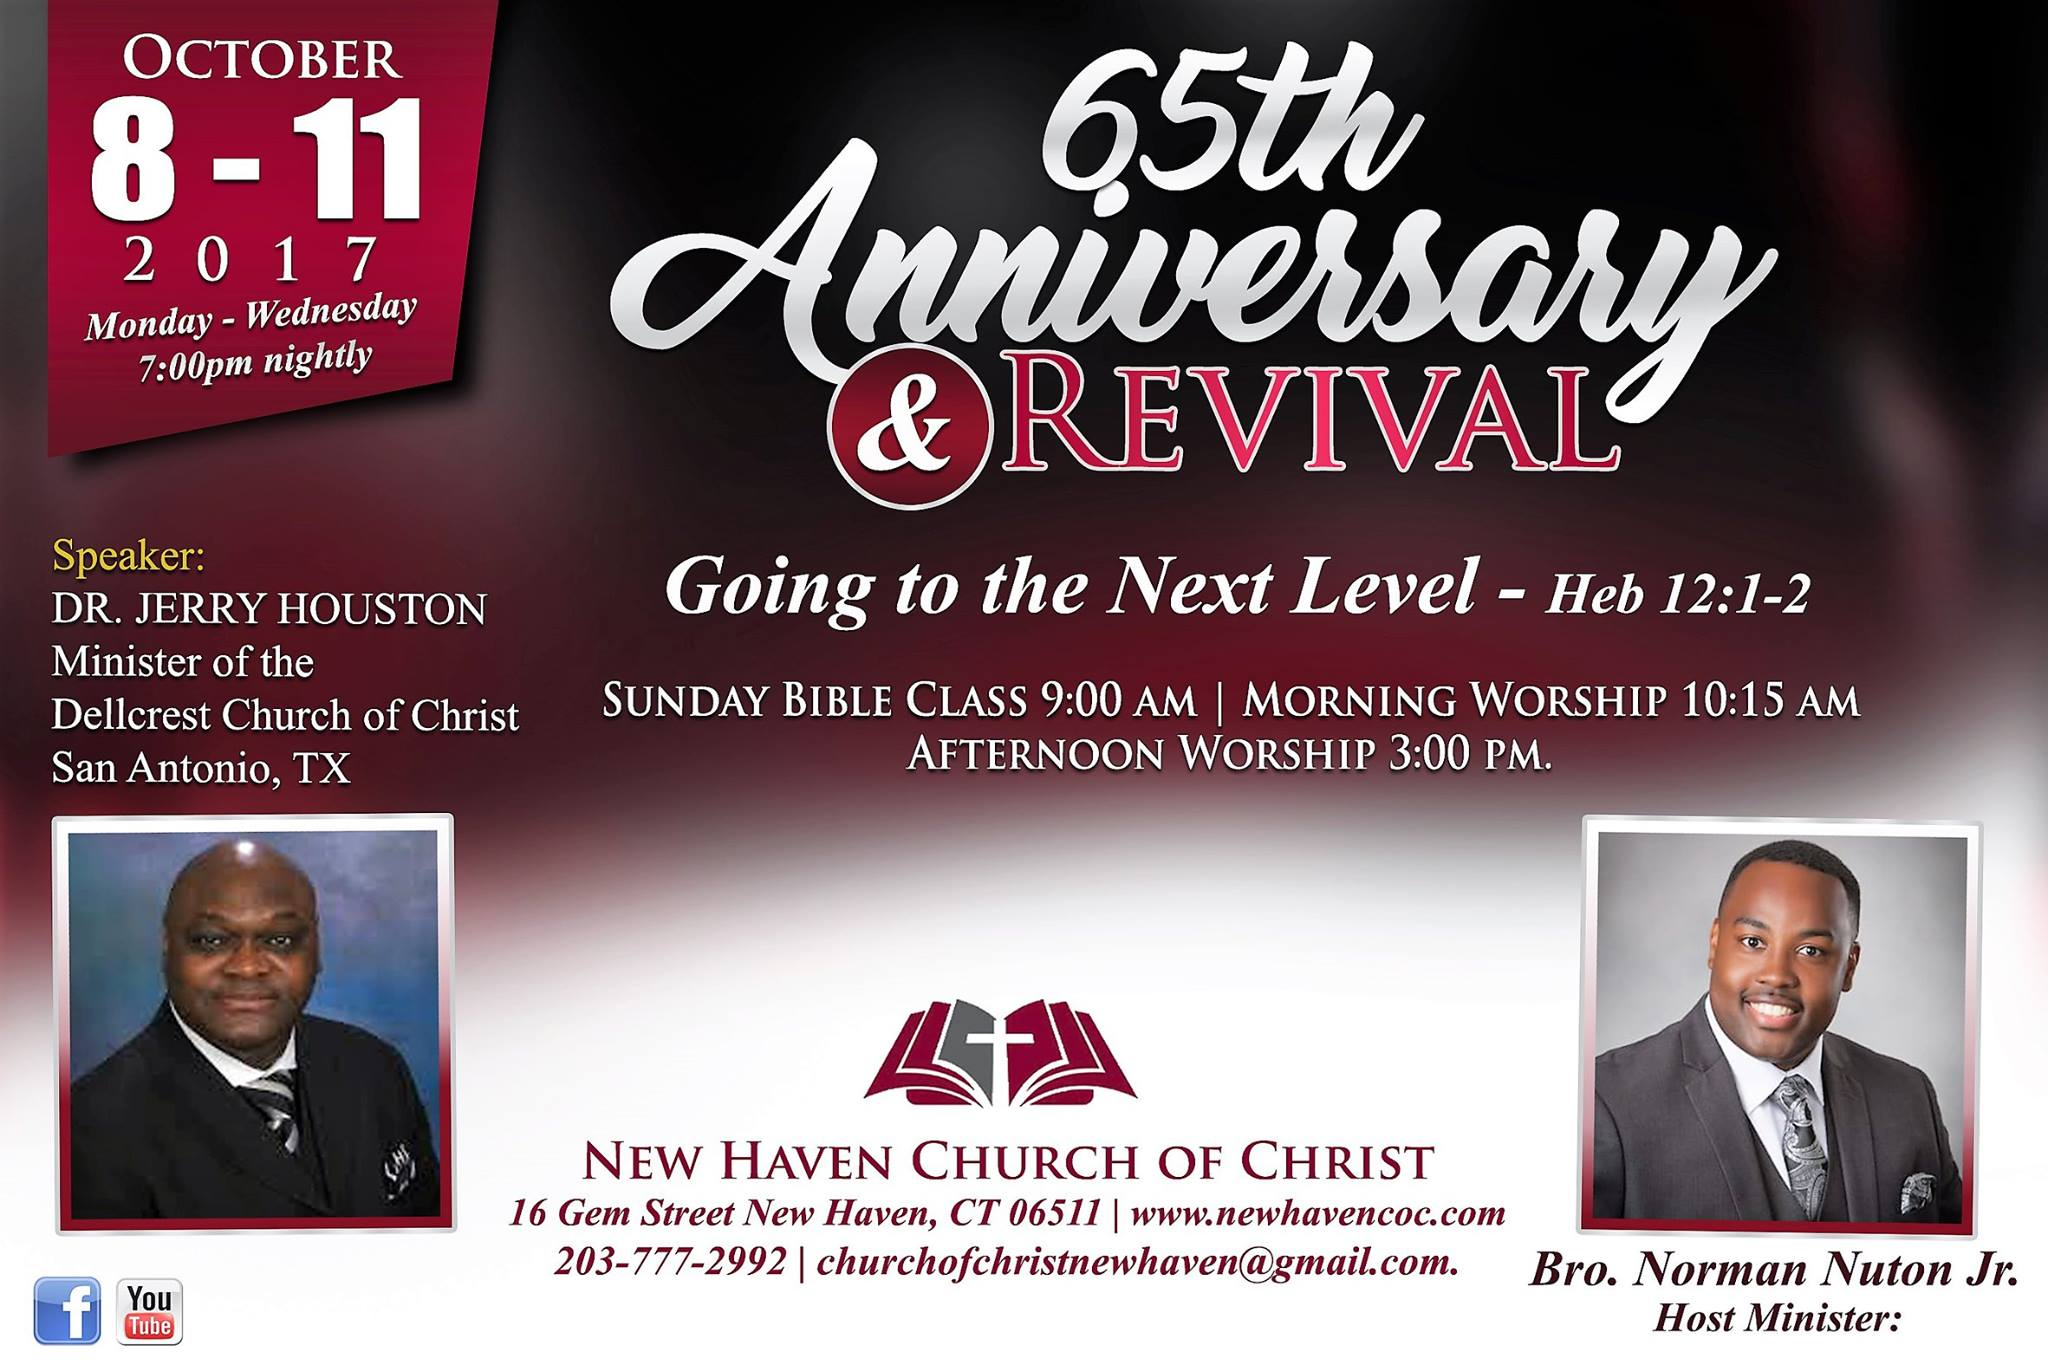 Hosted by the New Haven Church of Christ -